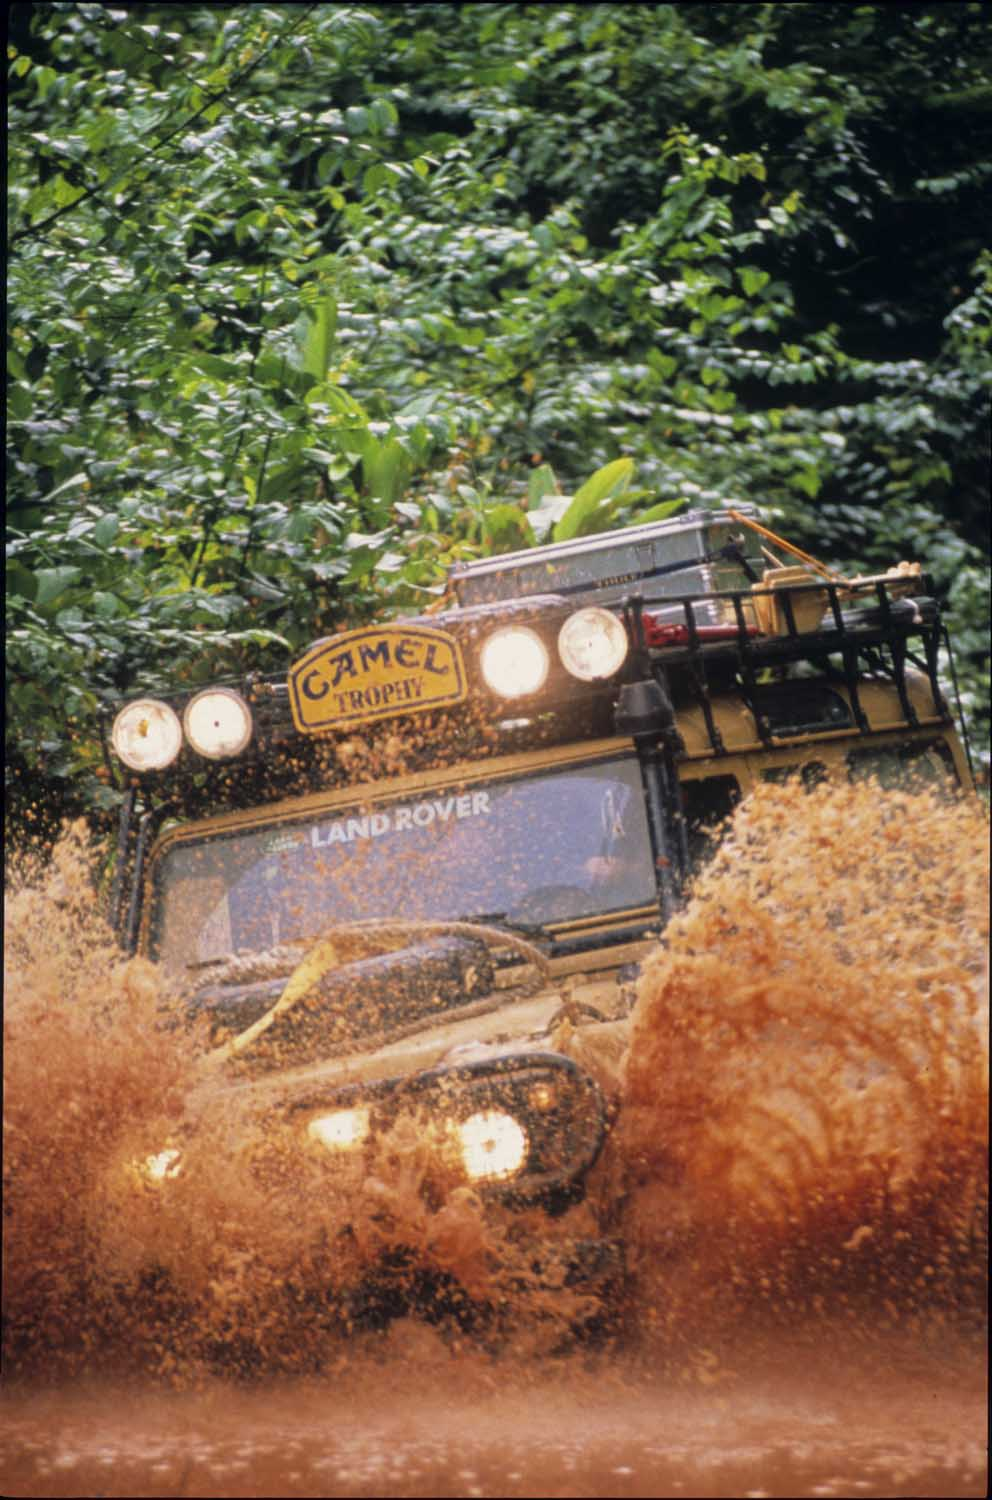 Return to Camel Trophy 020